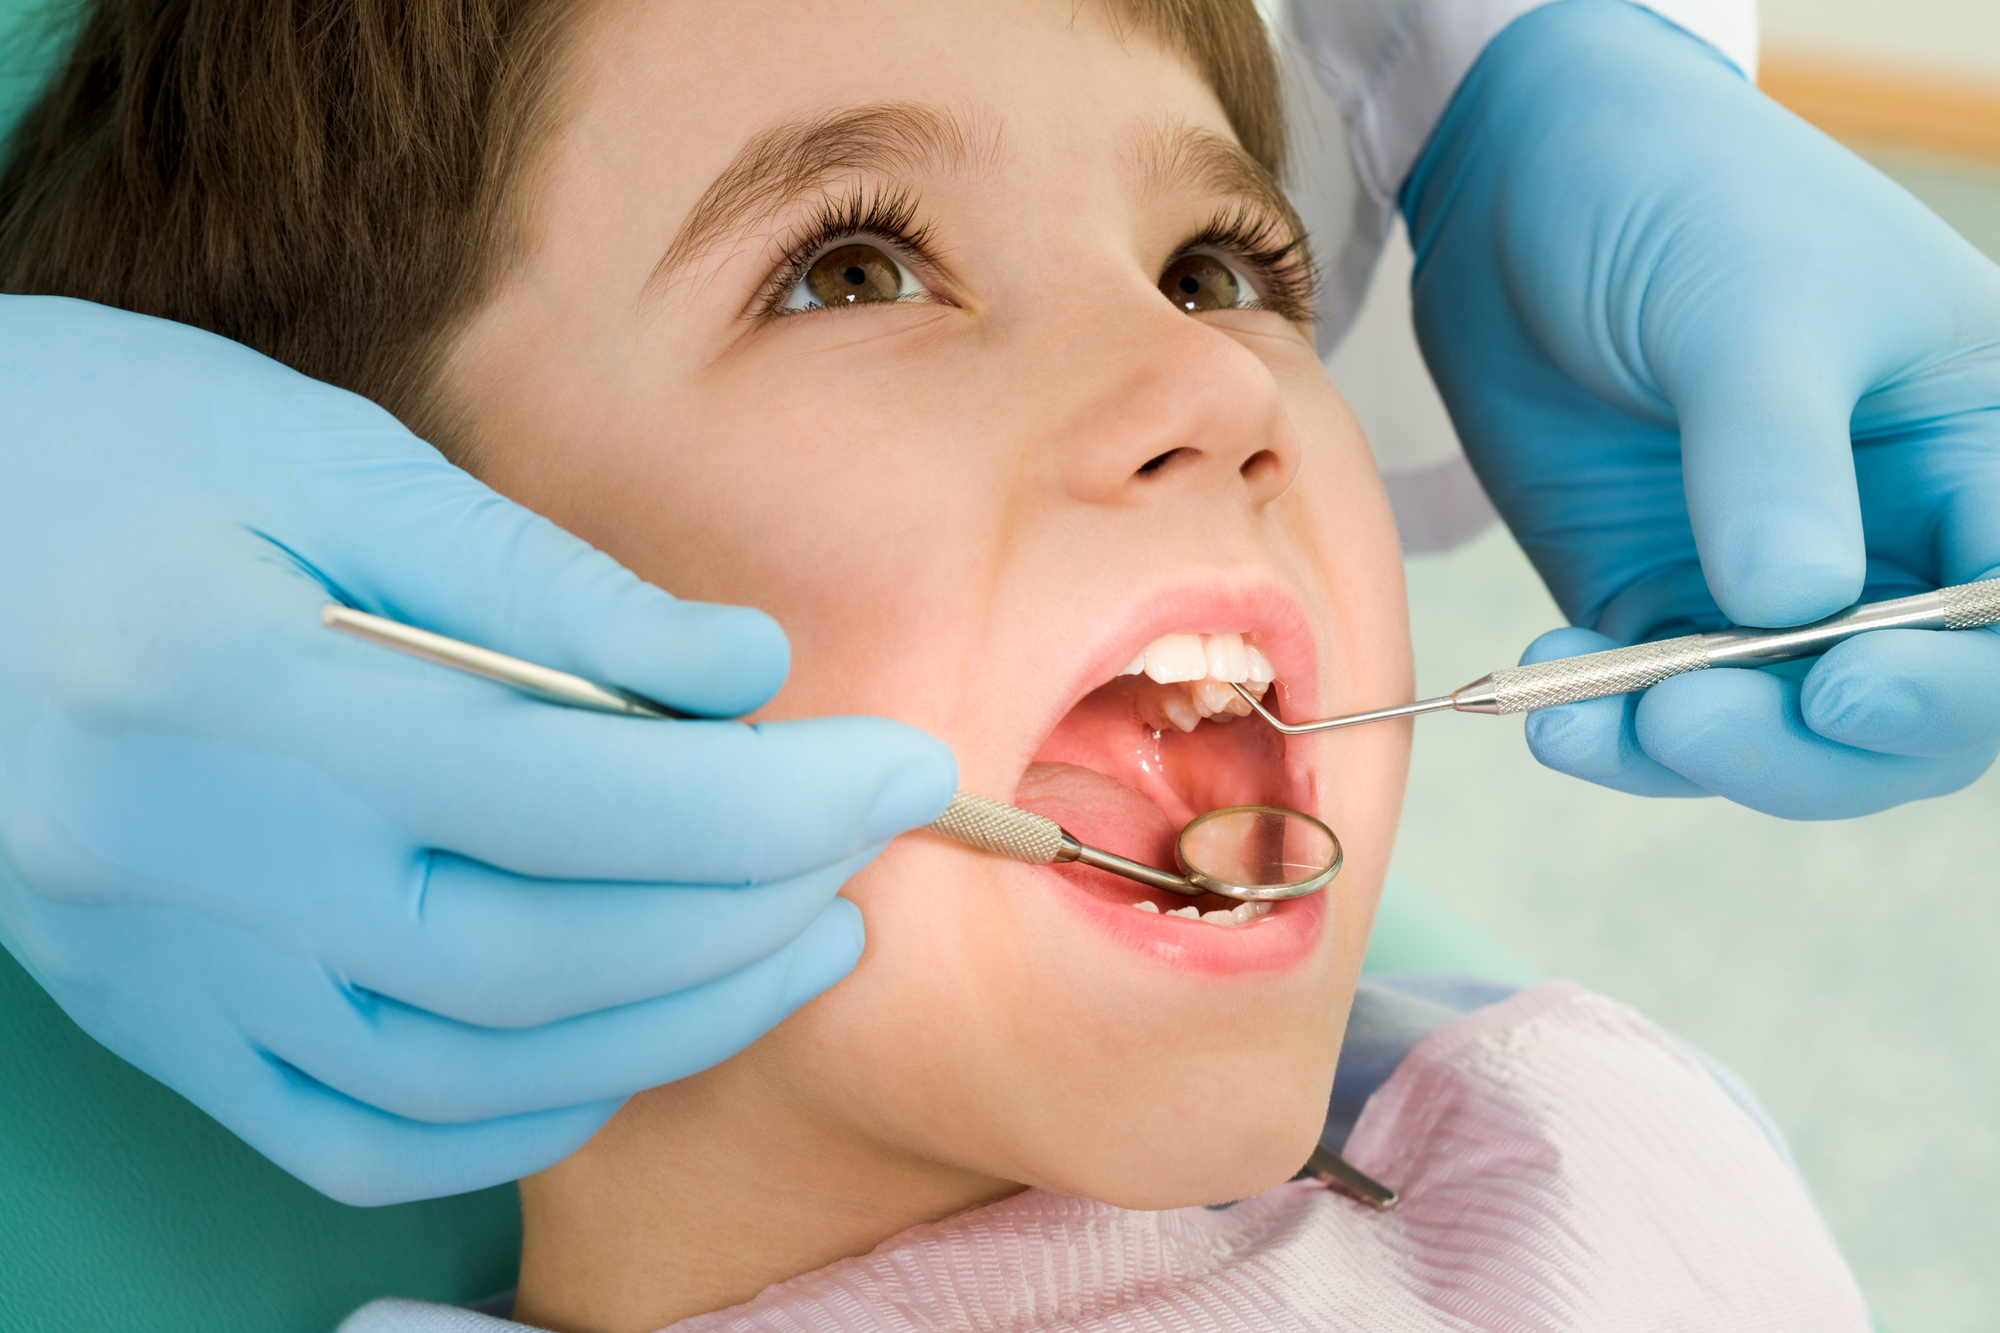 who offers an emergency dentist greenville sc?